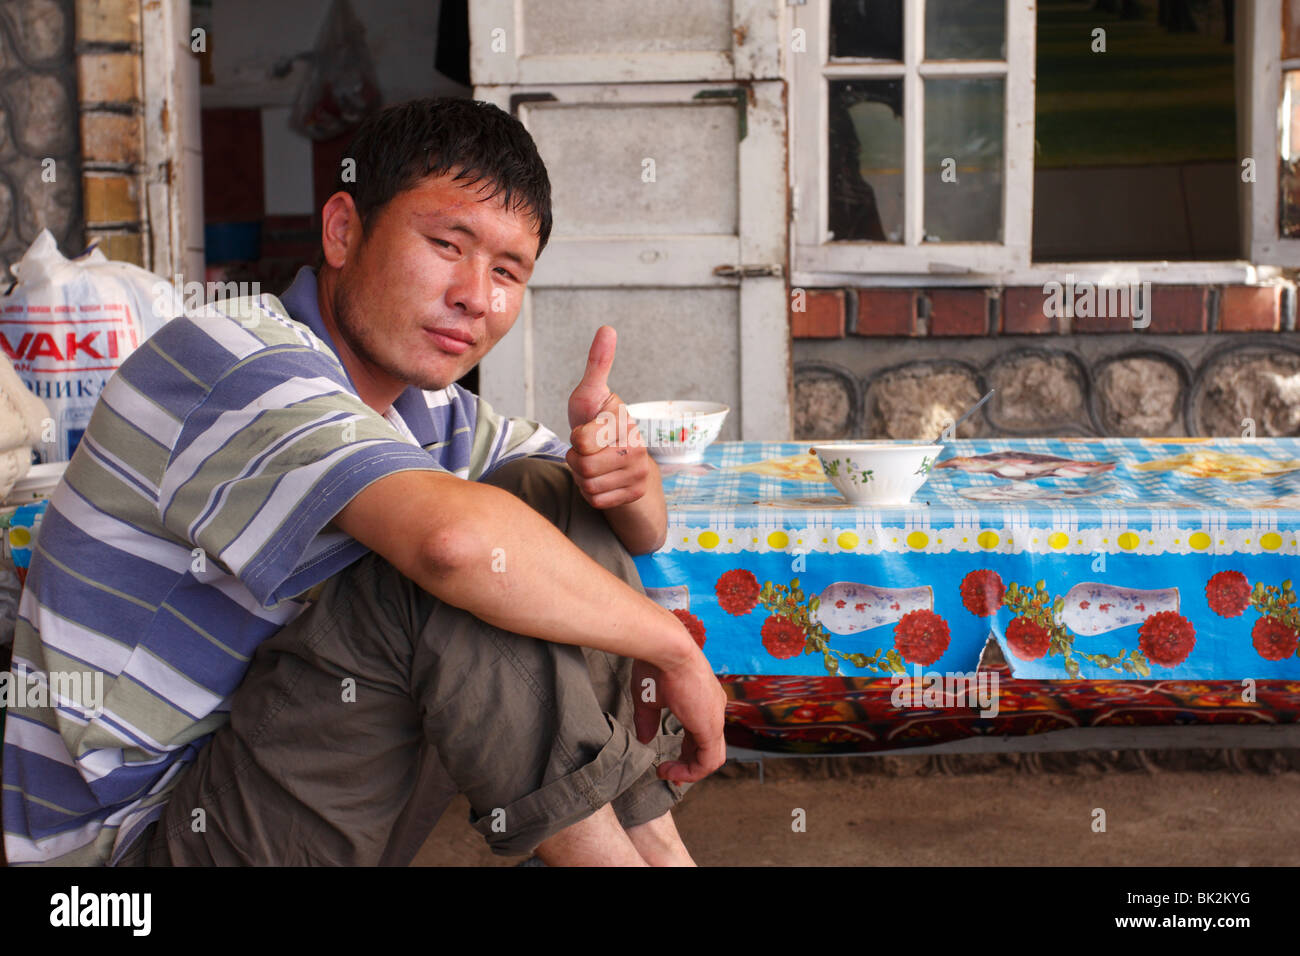 A man showing his thumbs up, Kyrgyzstan - Stock Image